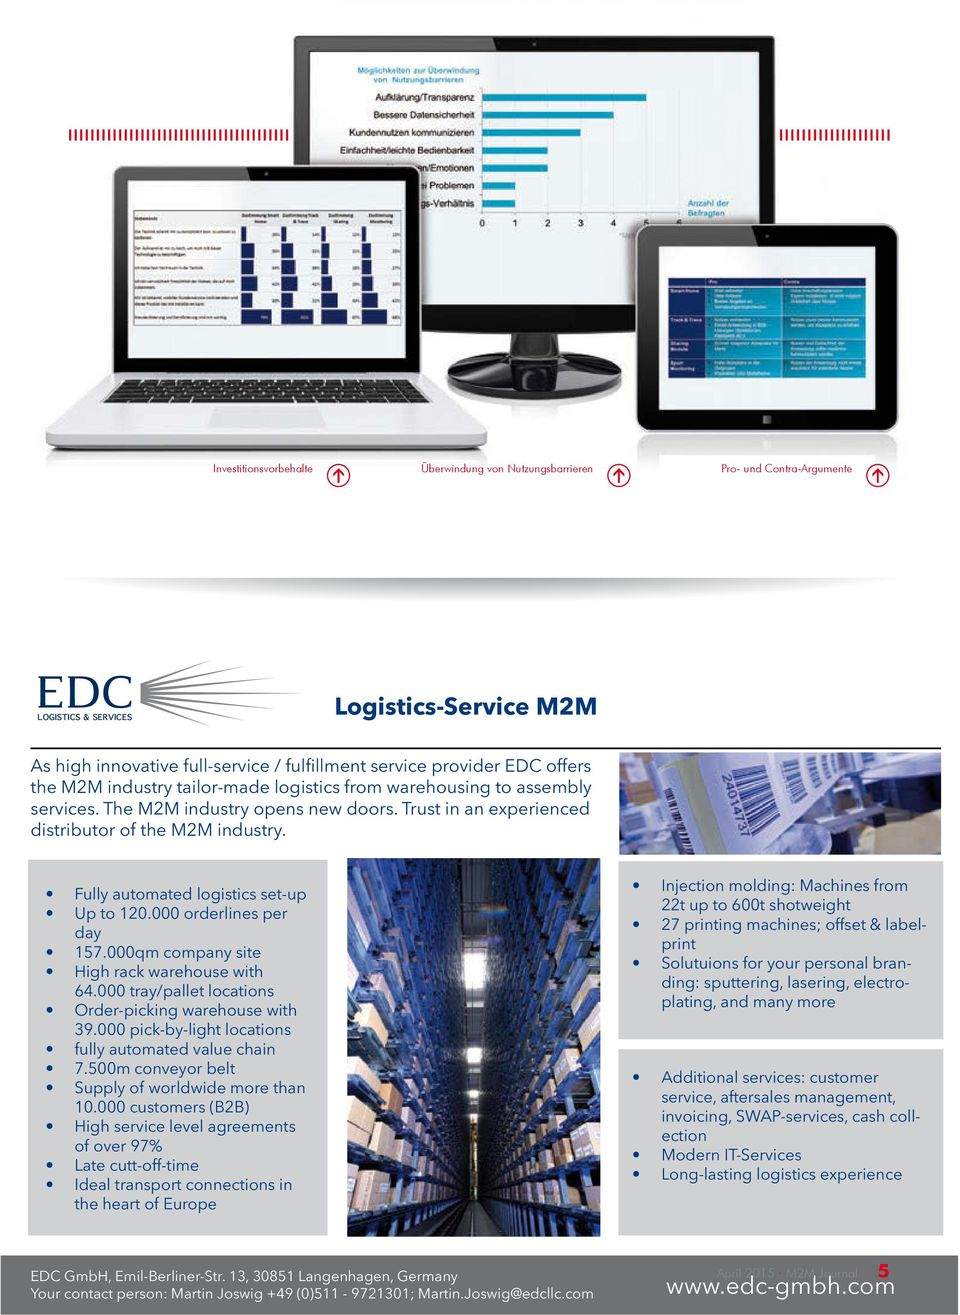 Fully automated logistics set-up Up to 120.000 orderlines per day 157.000qm company site High rack warehouse with 64.000 tray/pallet locations Order-picking warehouse with 39.